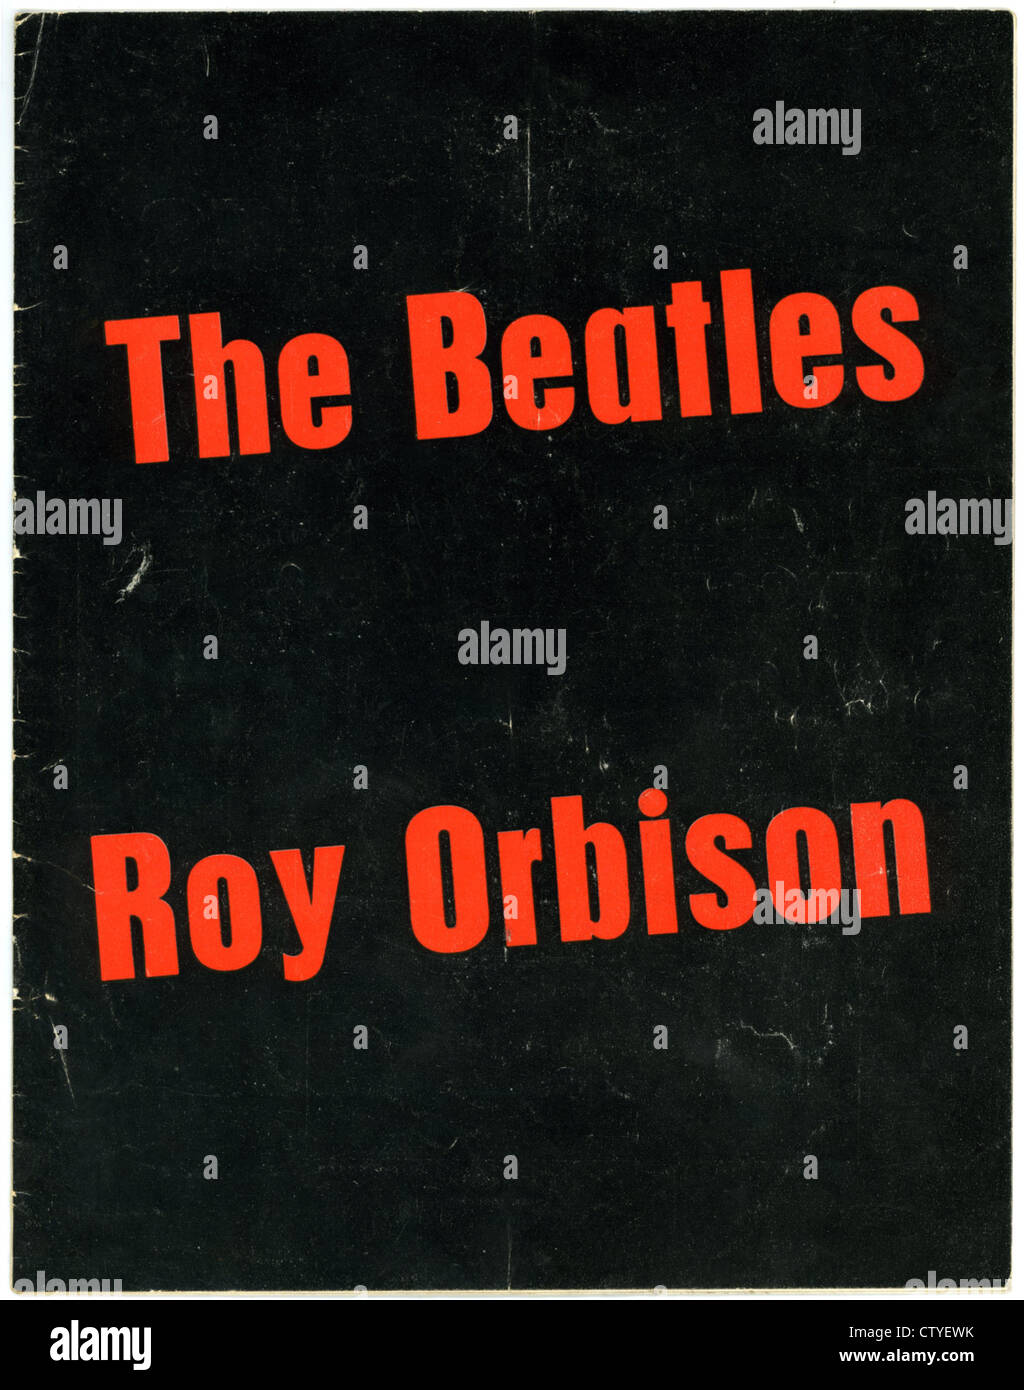 000865 - The Beatles and Roy Orbison Concert Programme from May 1963 - Stock Image